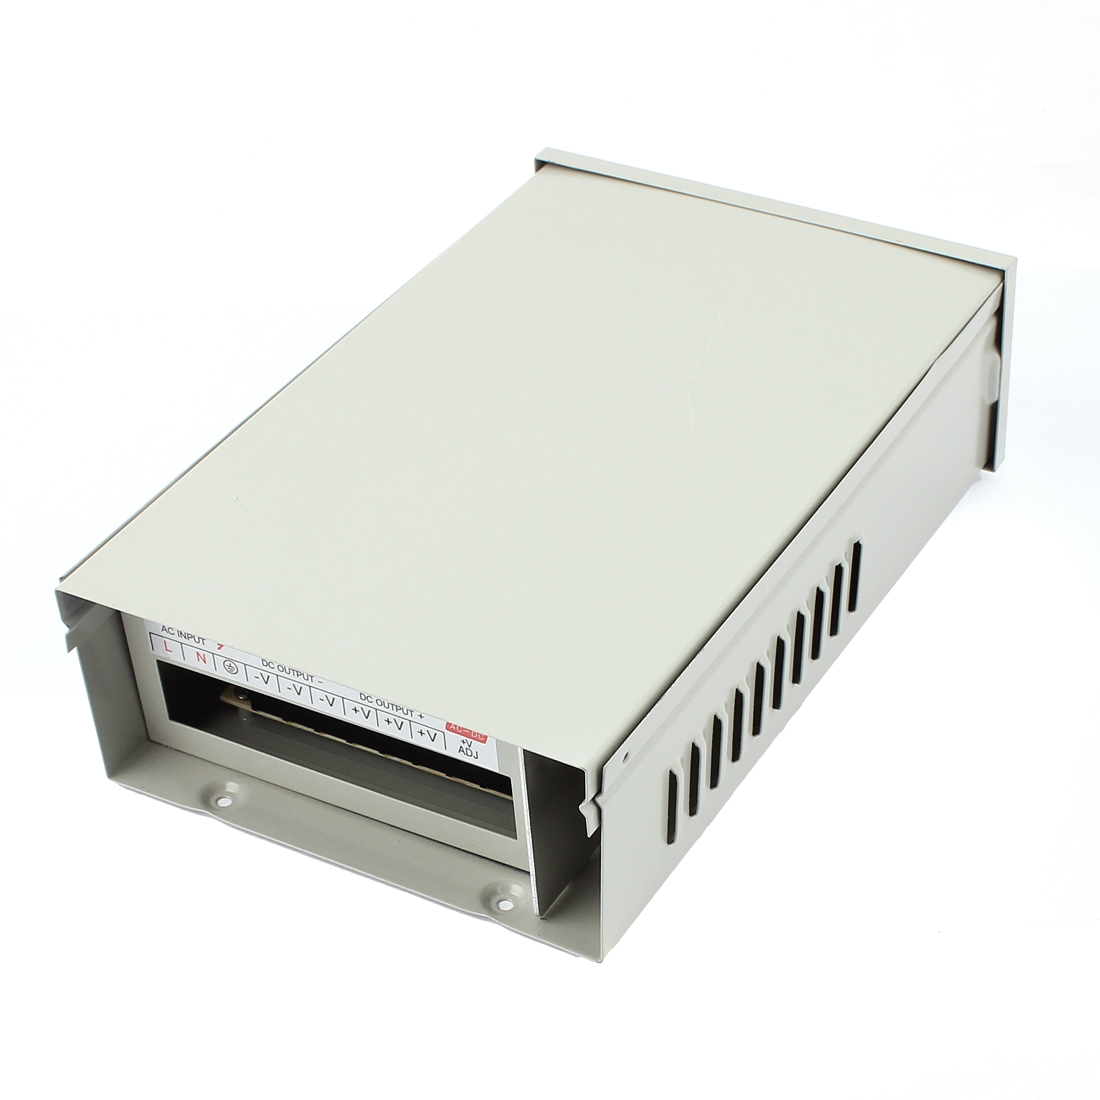 AC110-220V DC12V 20A 250W Switching Power Supply Adapter Transformer for LED Strip Display